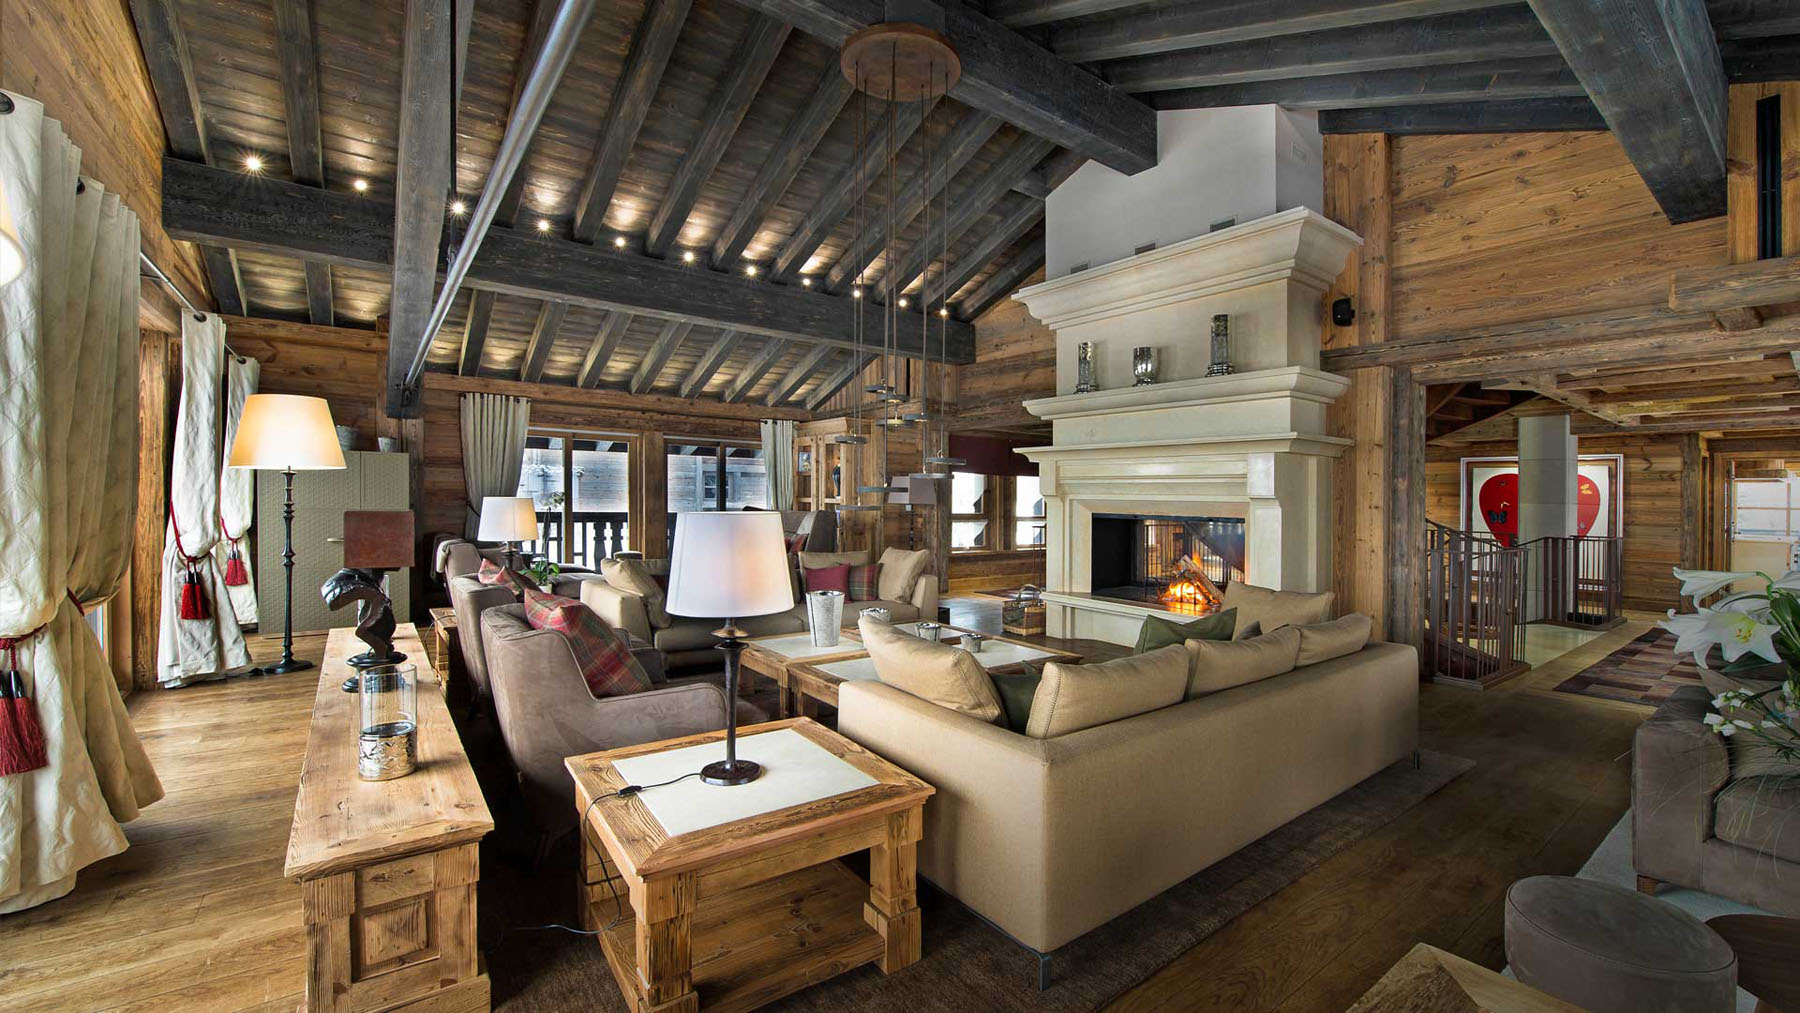 Elegant chalet edelweiss in the french alps idesignarch interior design architecture - Interieur chalet berg foto ...